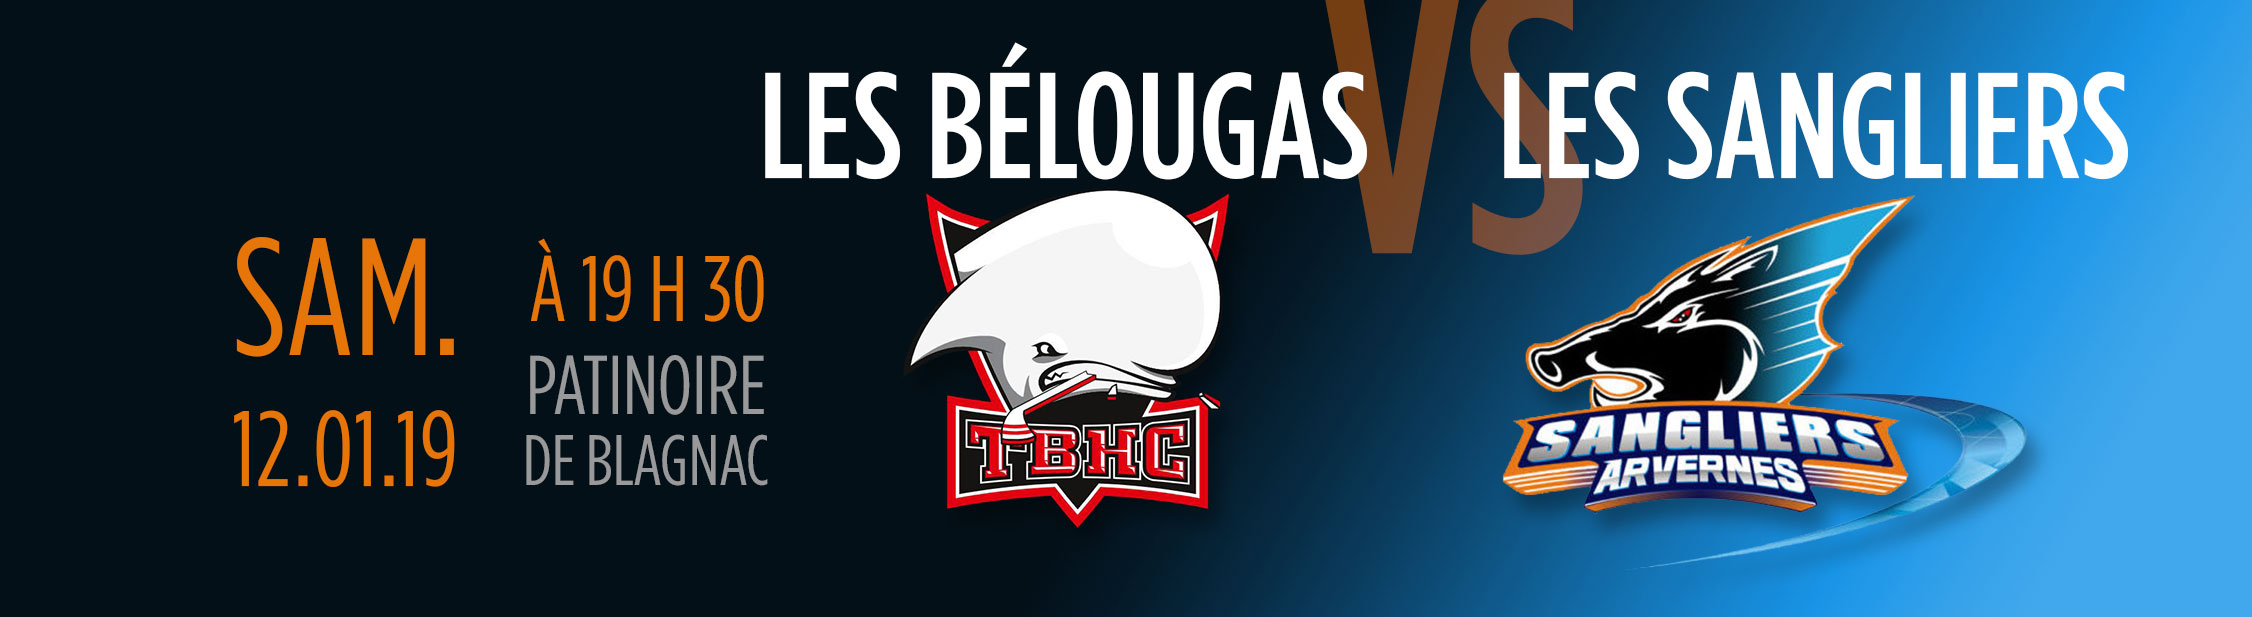 visuel hockey belougas sangliers